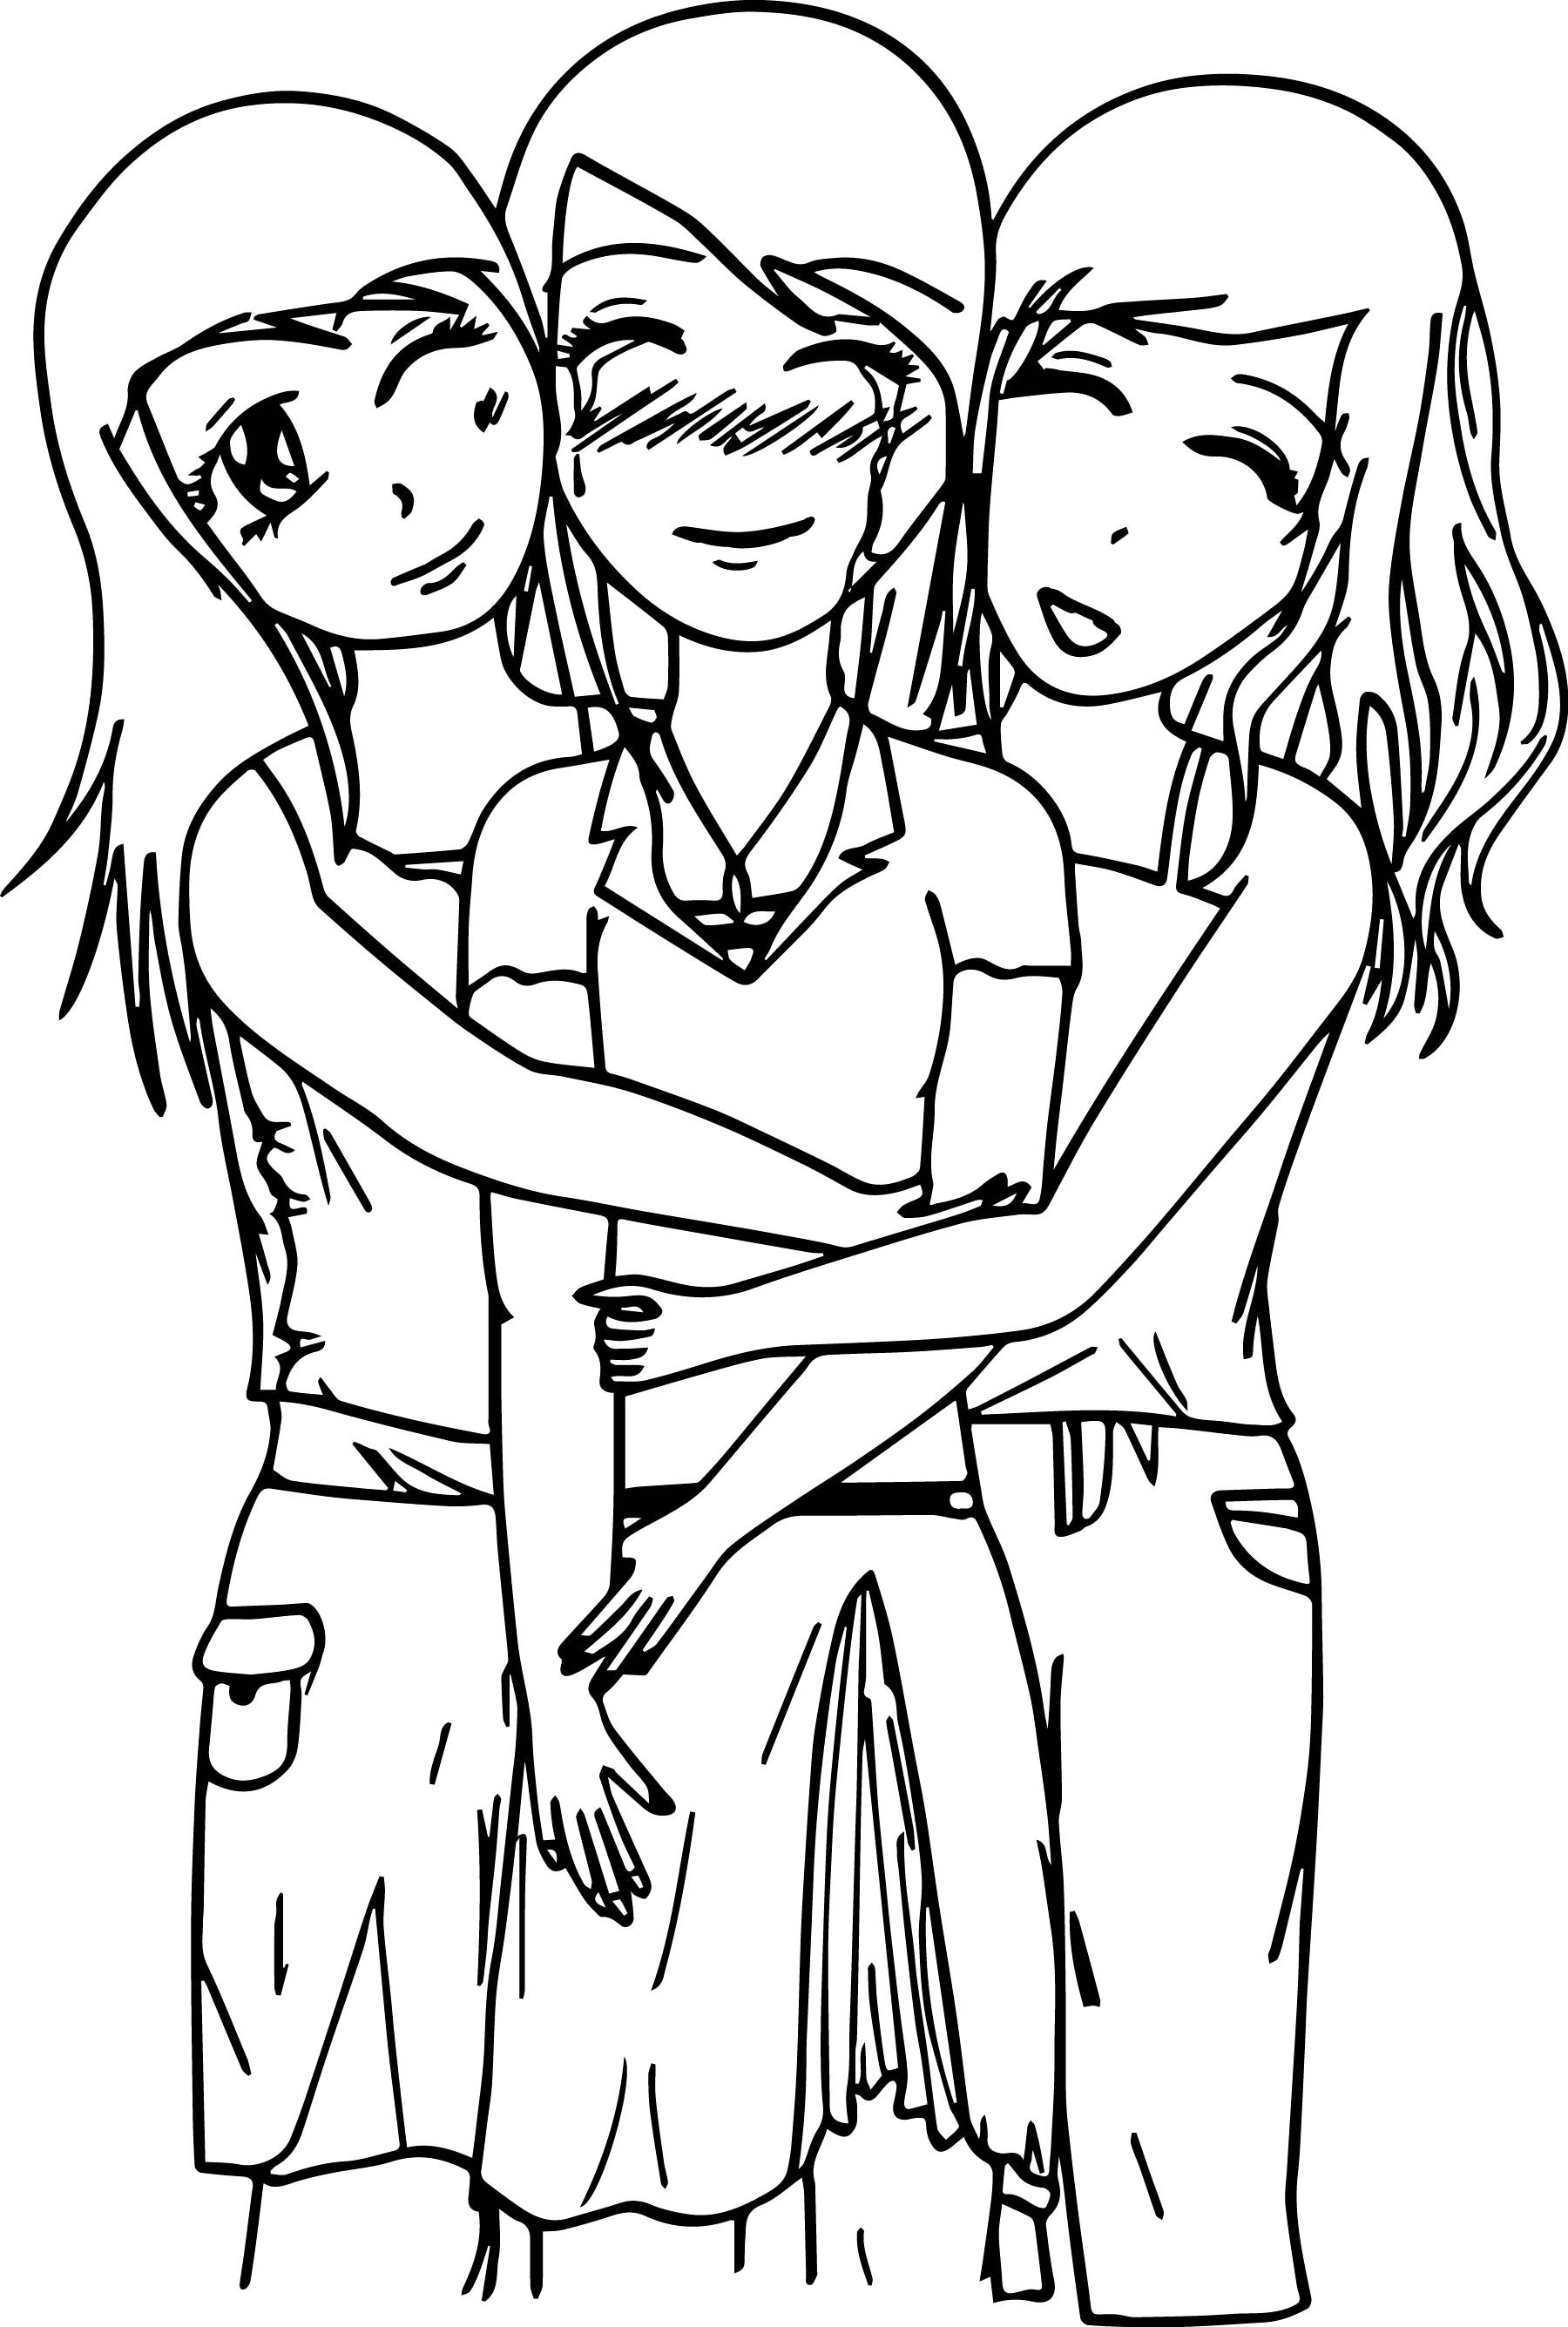 Bff Coloring Pages 1967297 Best Friend Cute For Your Best Friend Drawings Drawings Of Friends Cute Best Friend Drawings